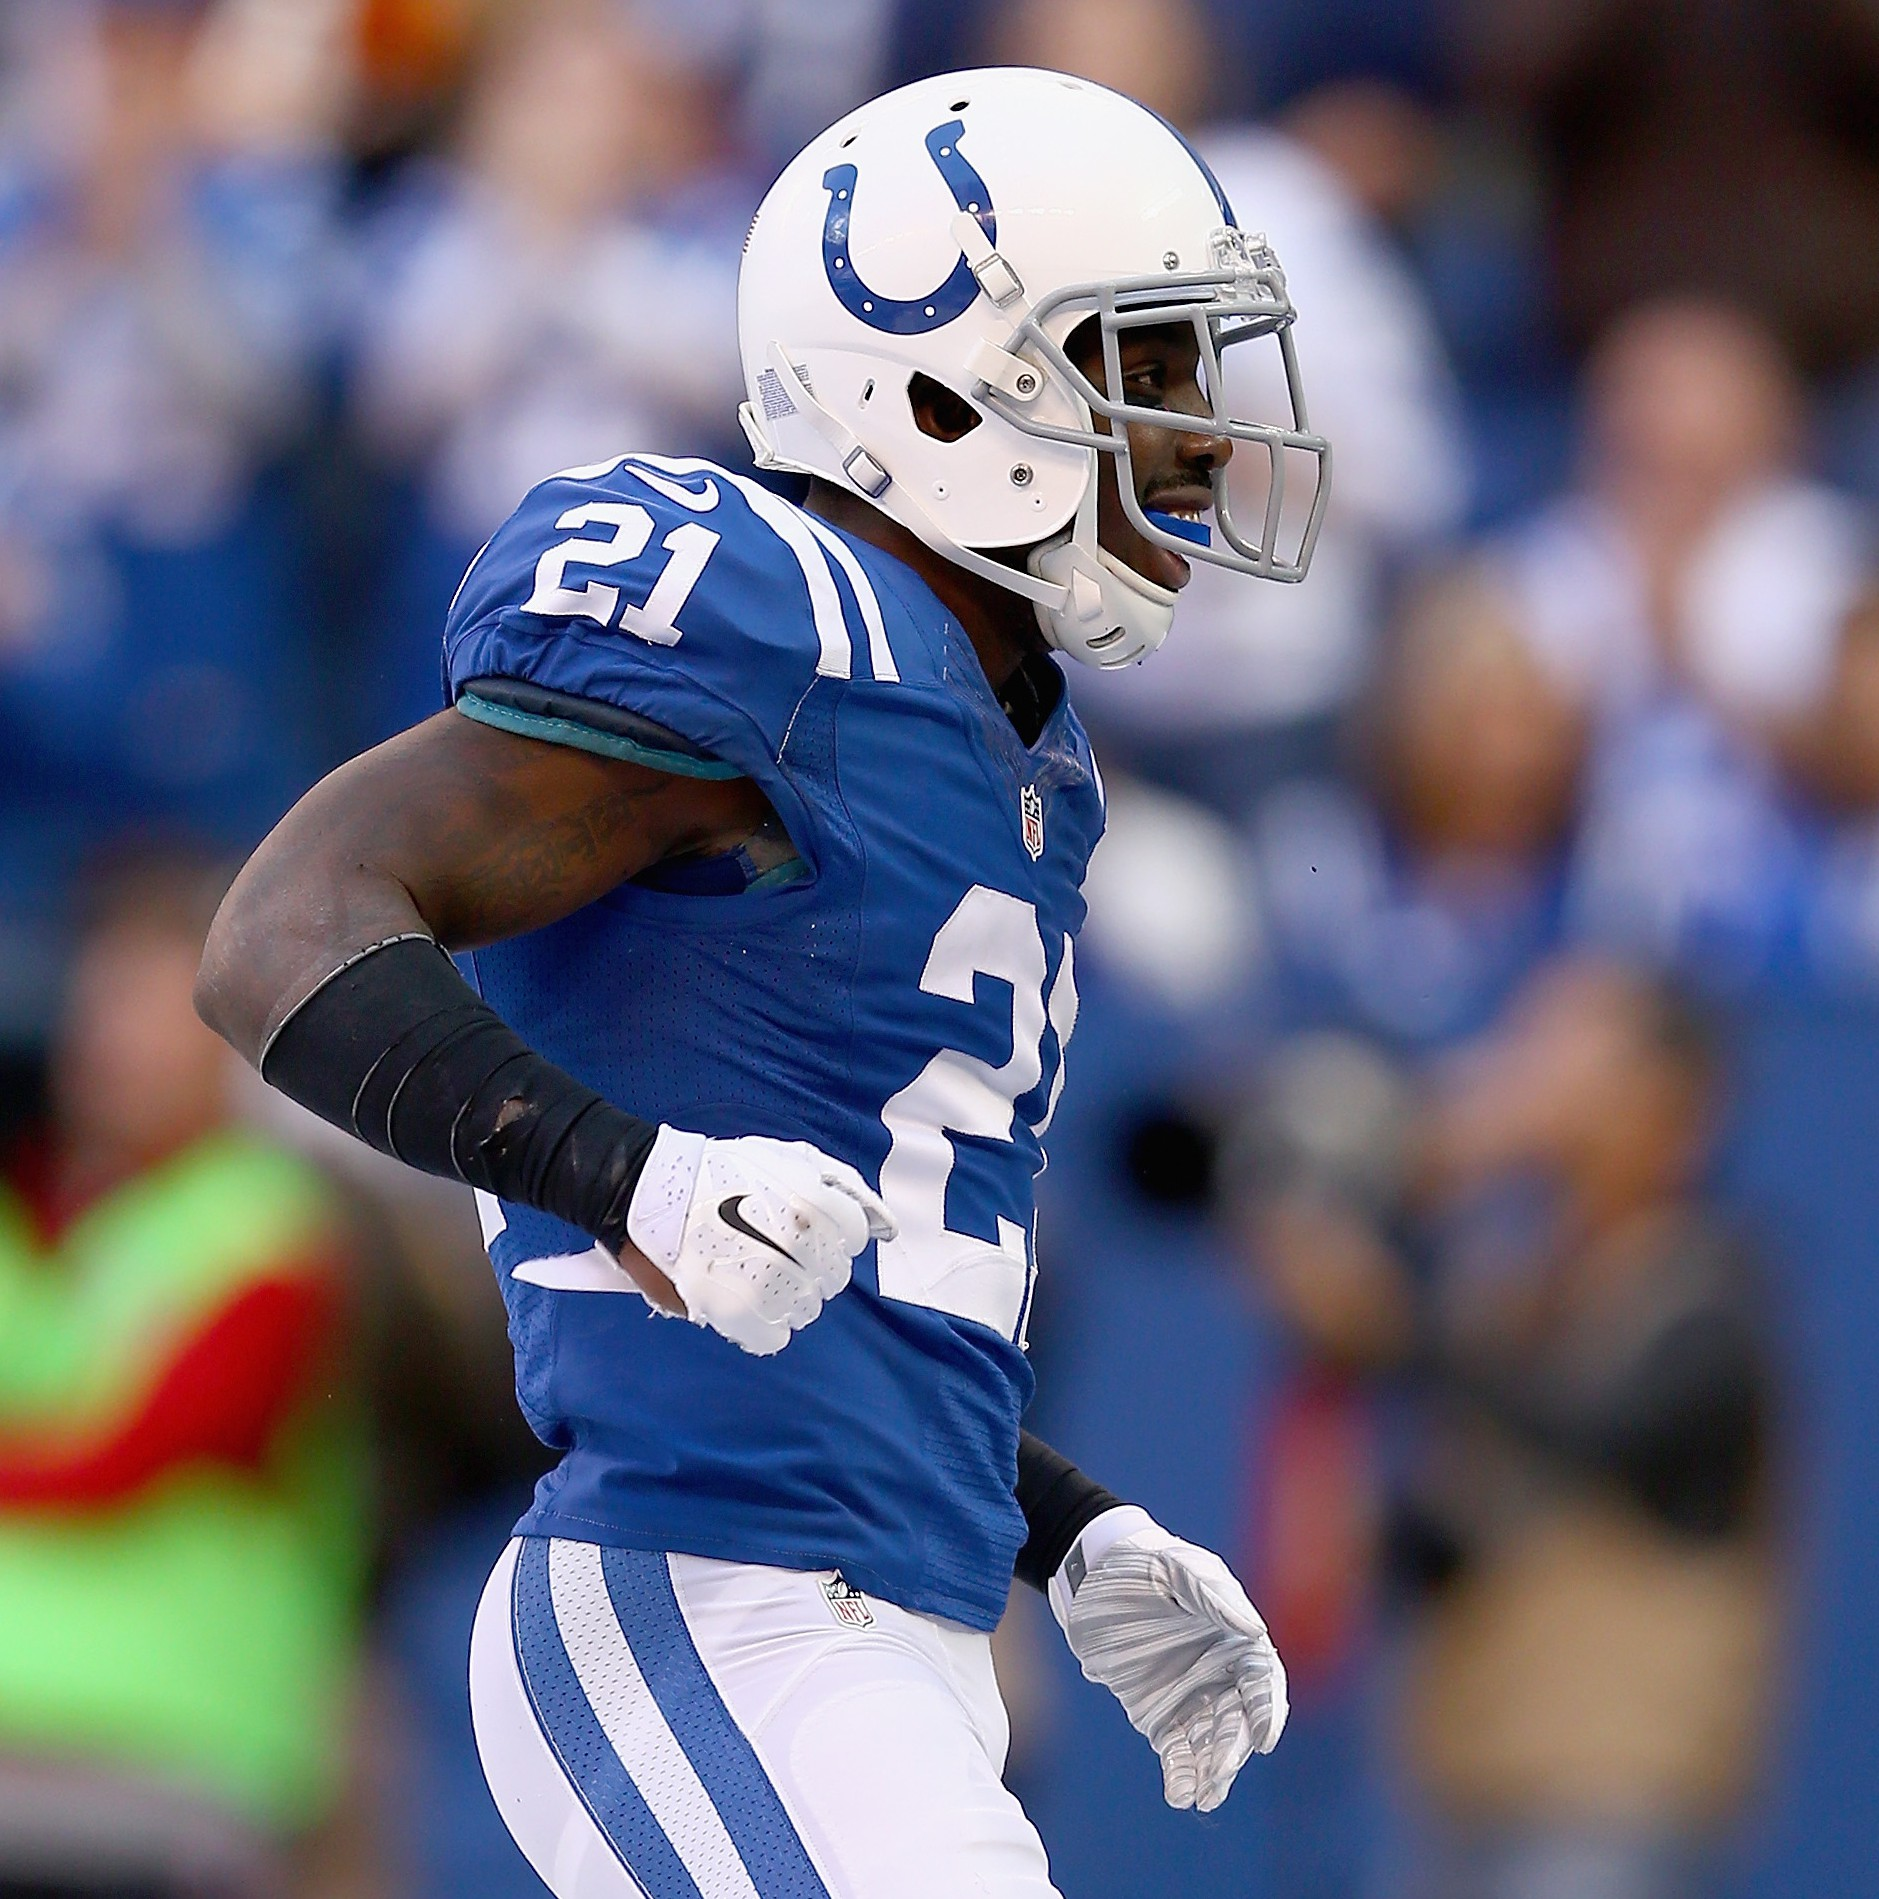 Put Indianapolis Colts Vontae Davis into the Pro Bowl